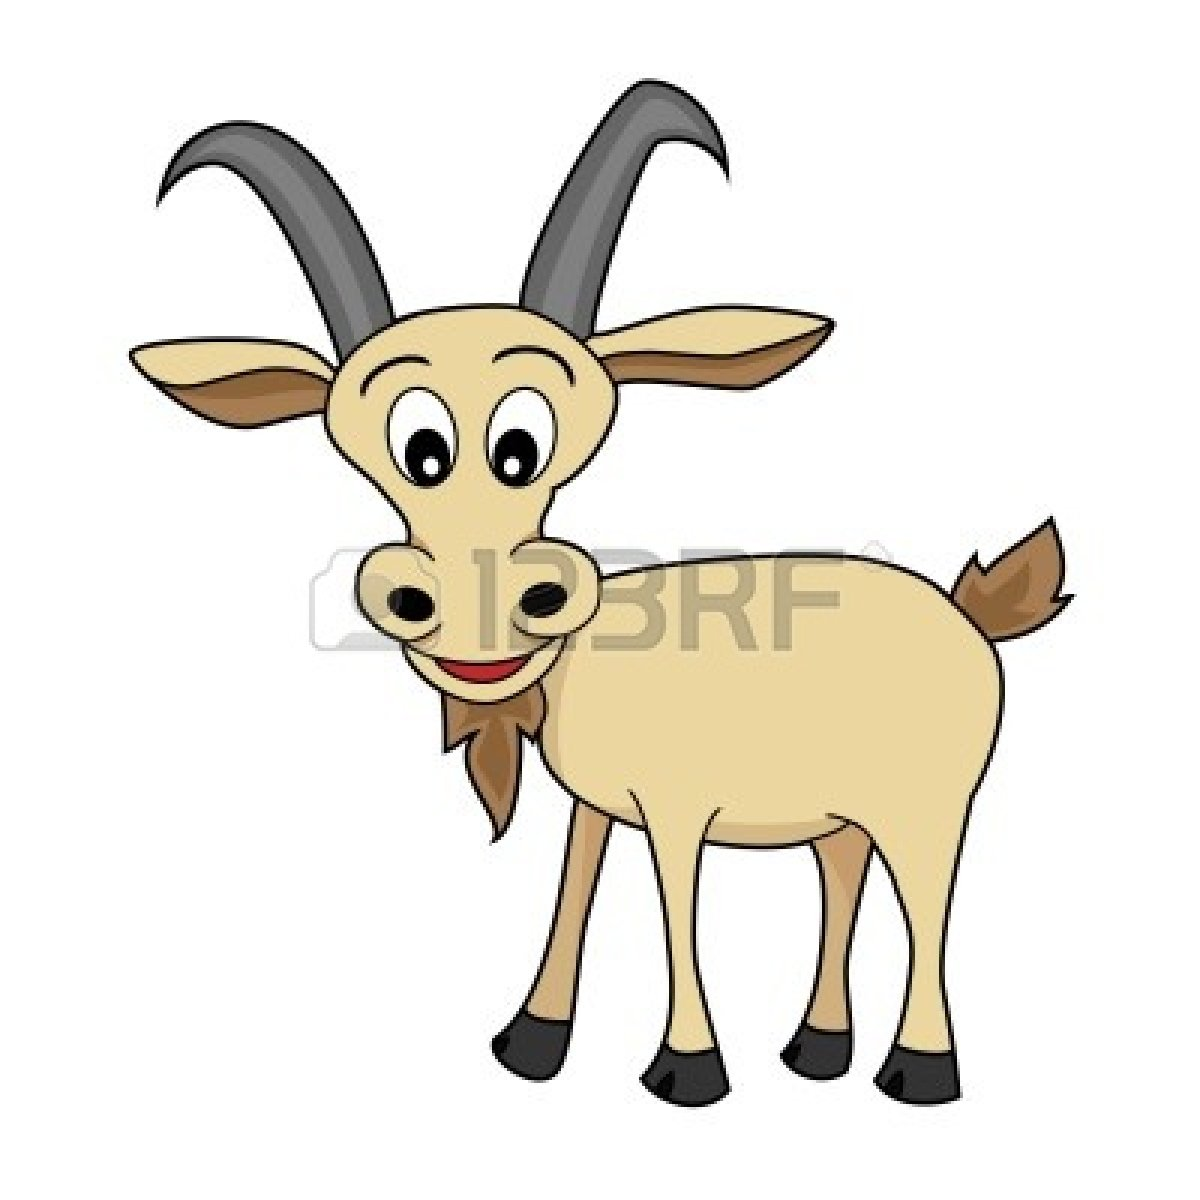 Cute Goat Clipart Billy Goat Cute Illustration Clipart Panda Free